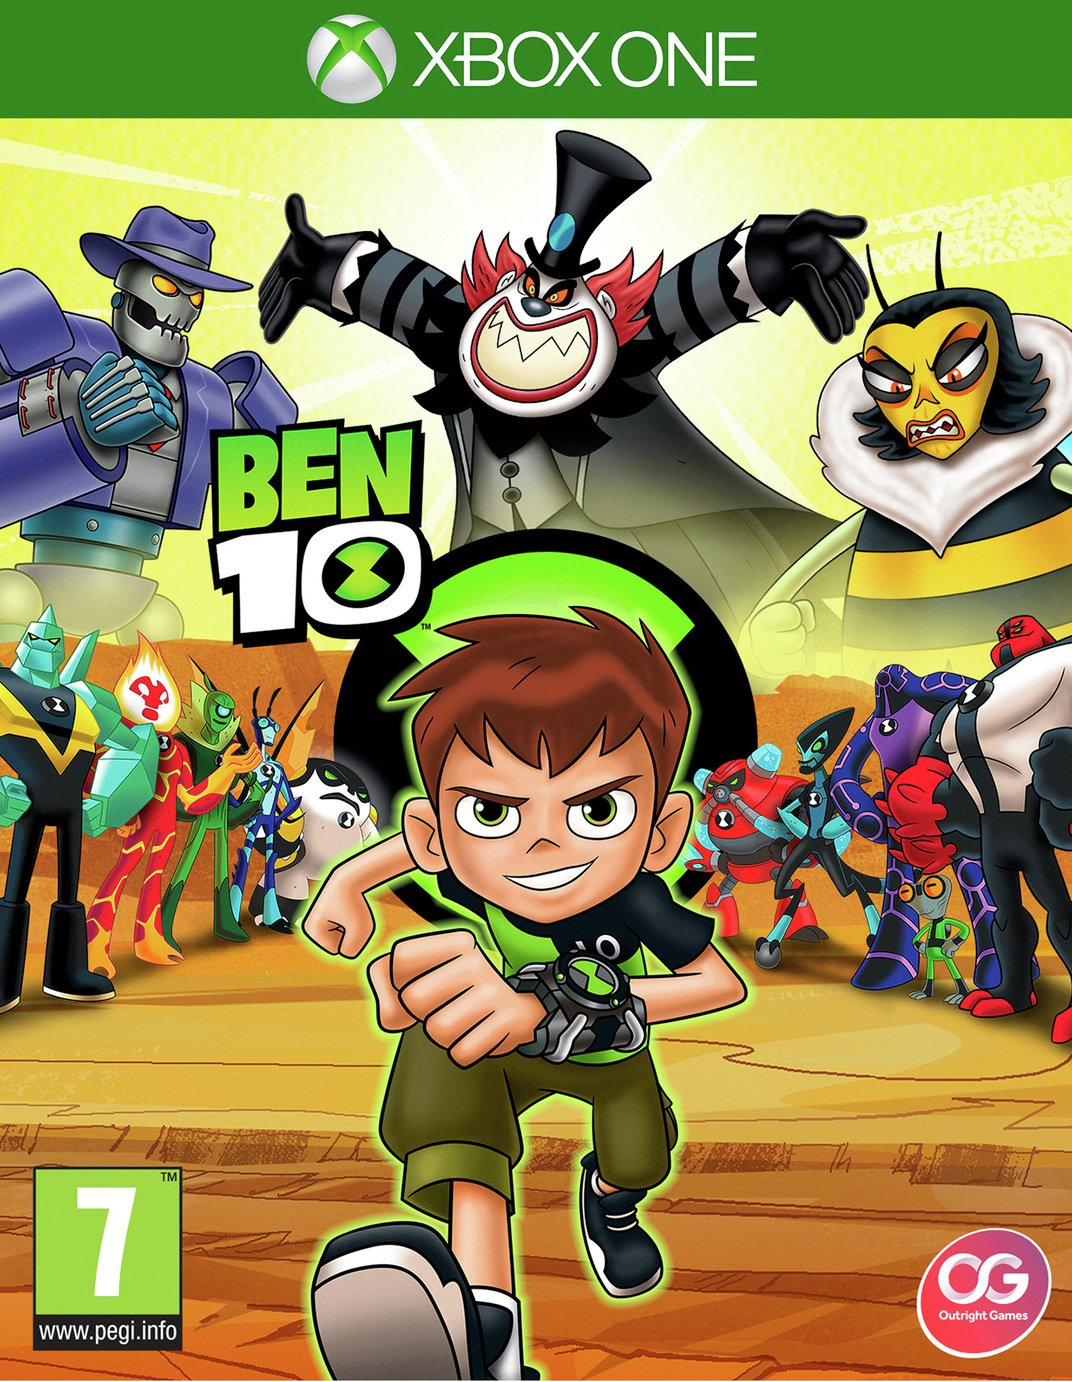 Image of Ben 10 Xbox One Game